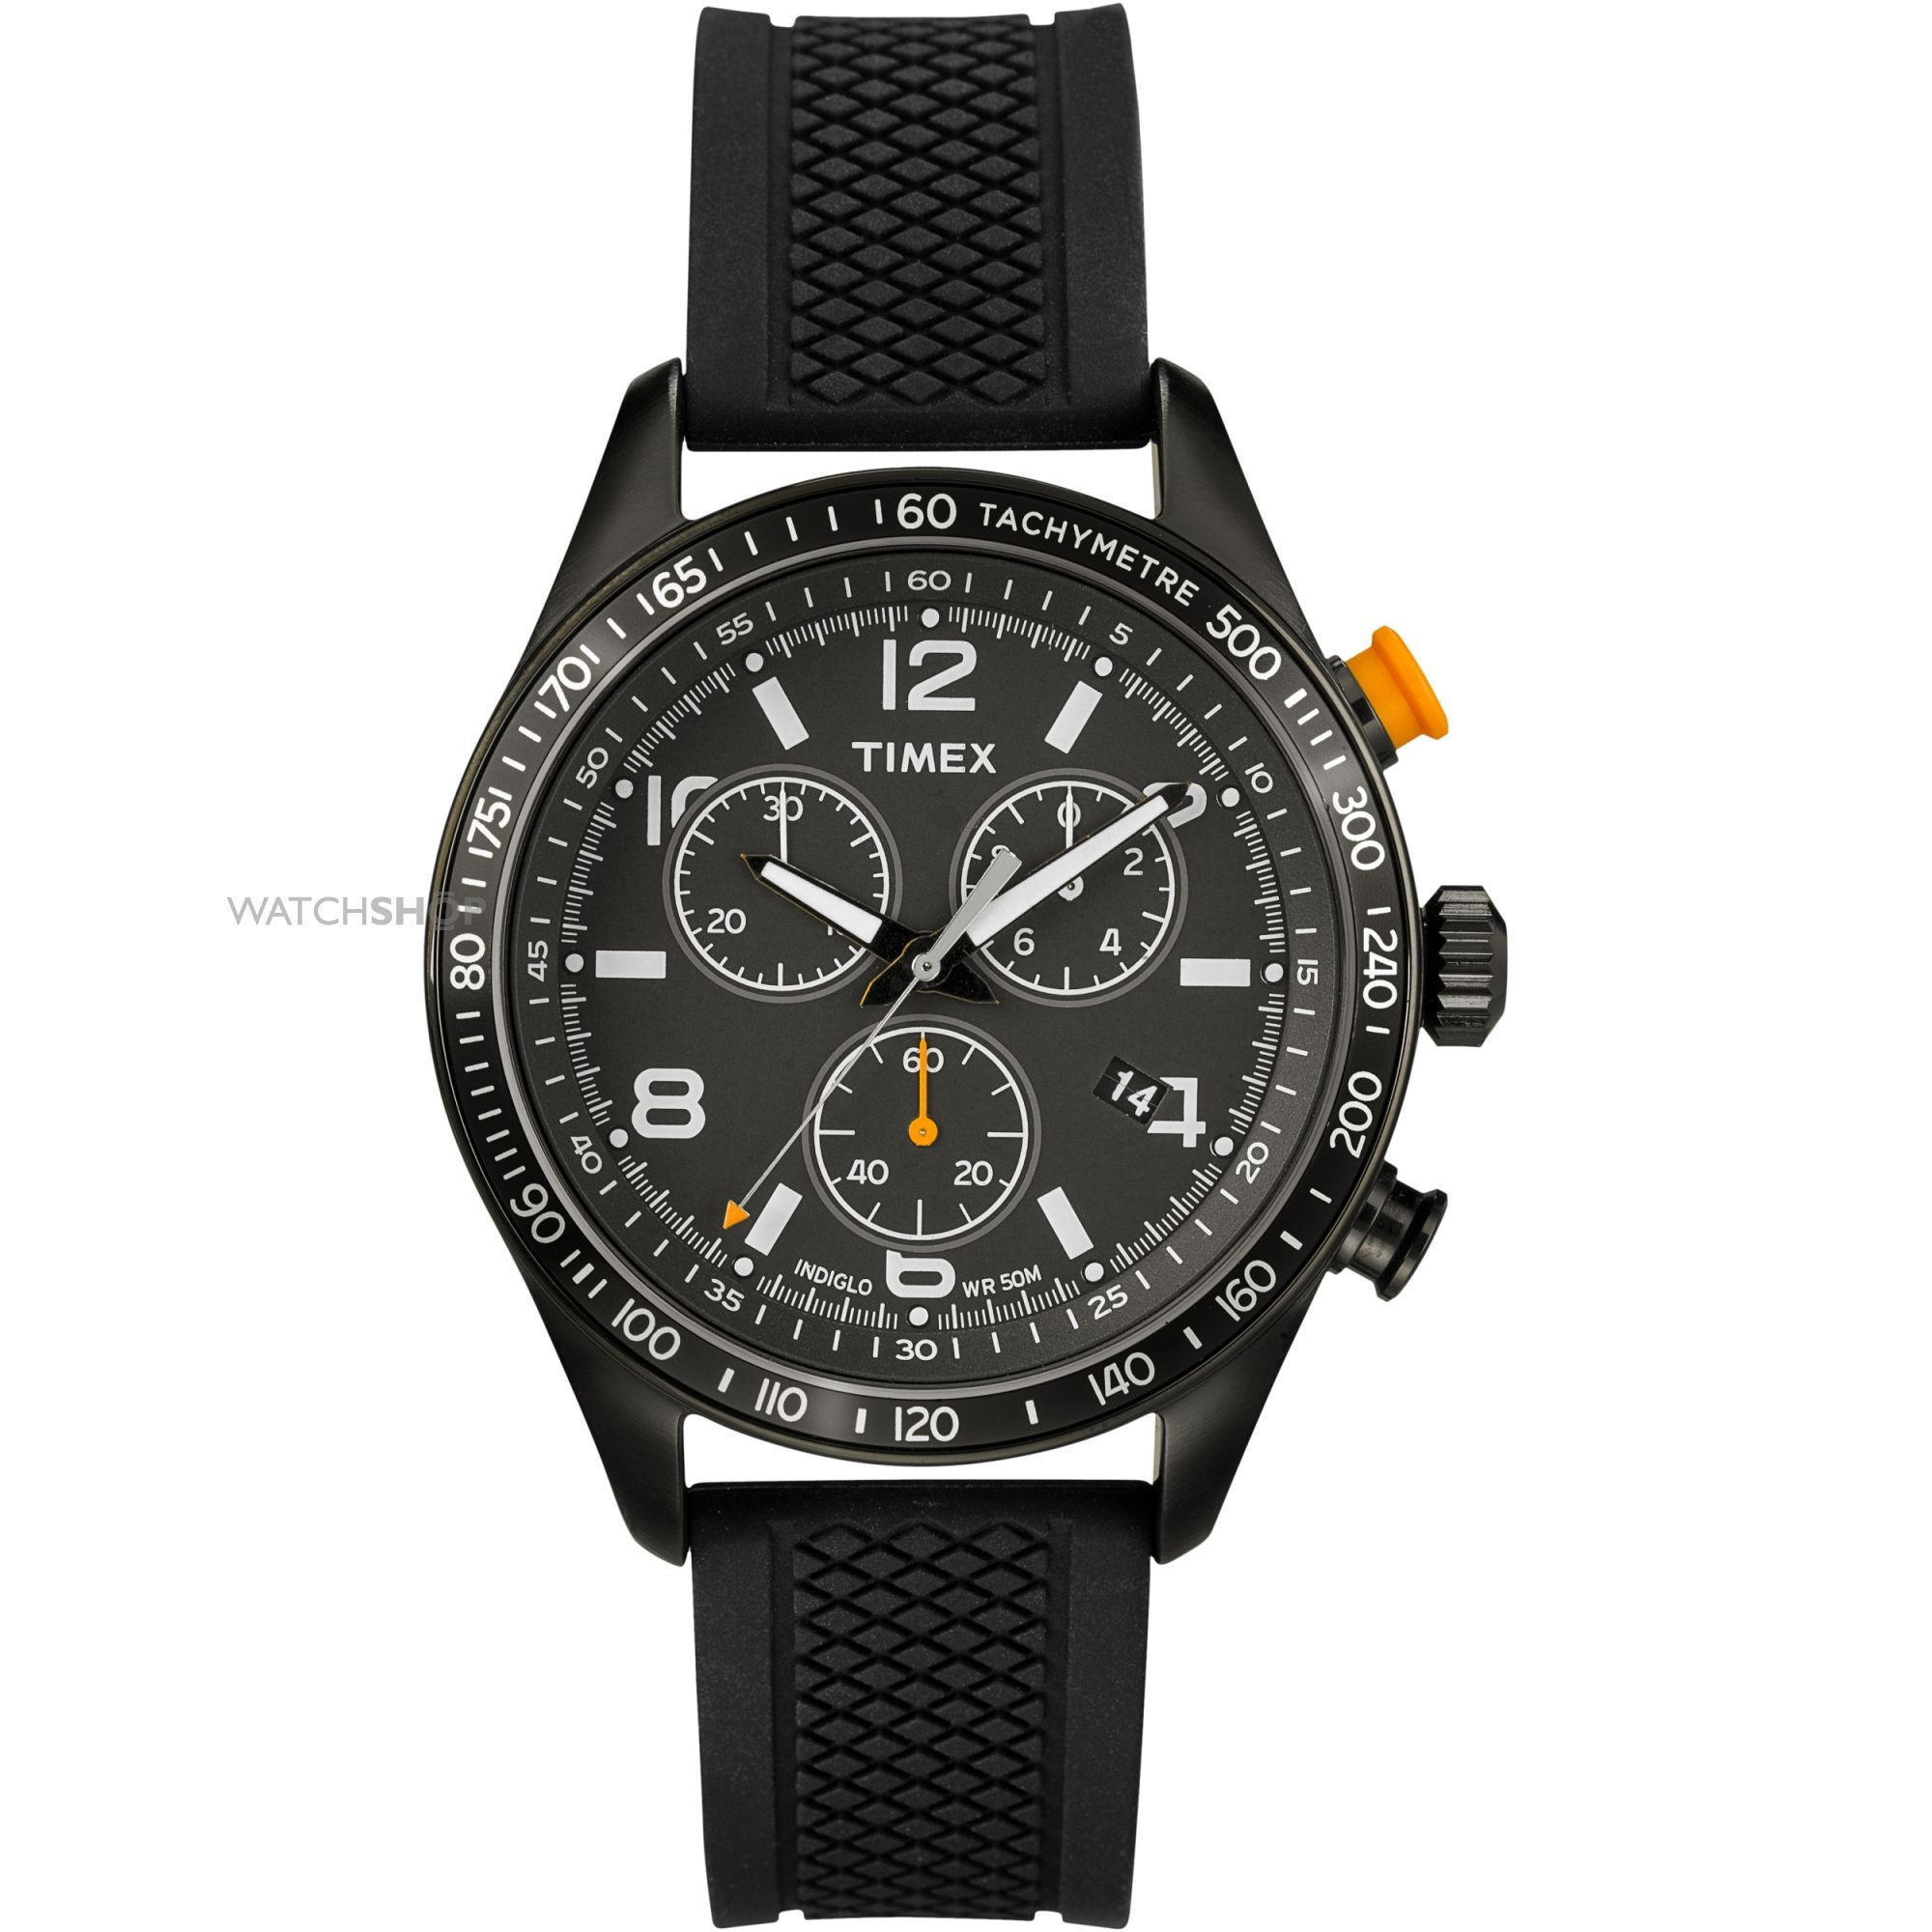 Mens Timex Indiglo Chicago Chronograph Watch T2P043  a3cfc8246424c